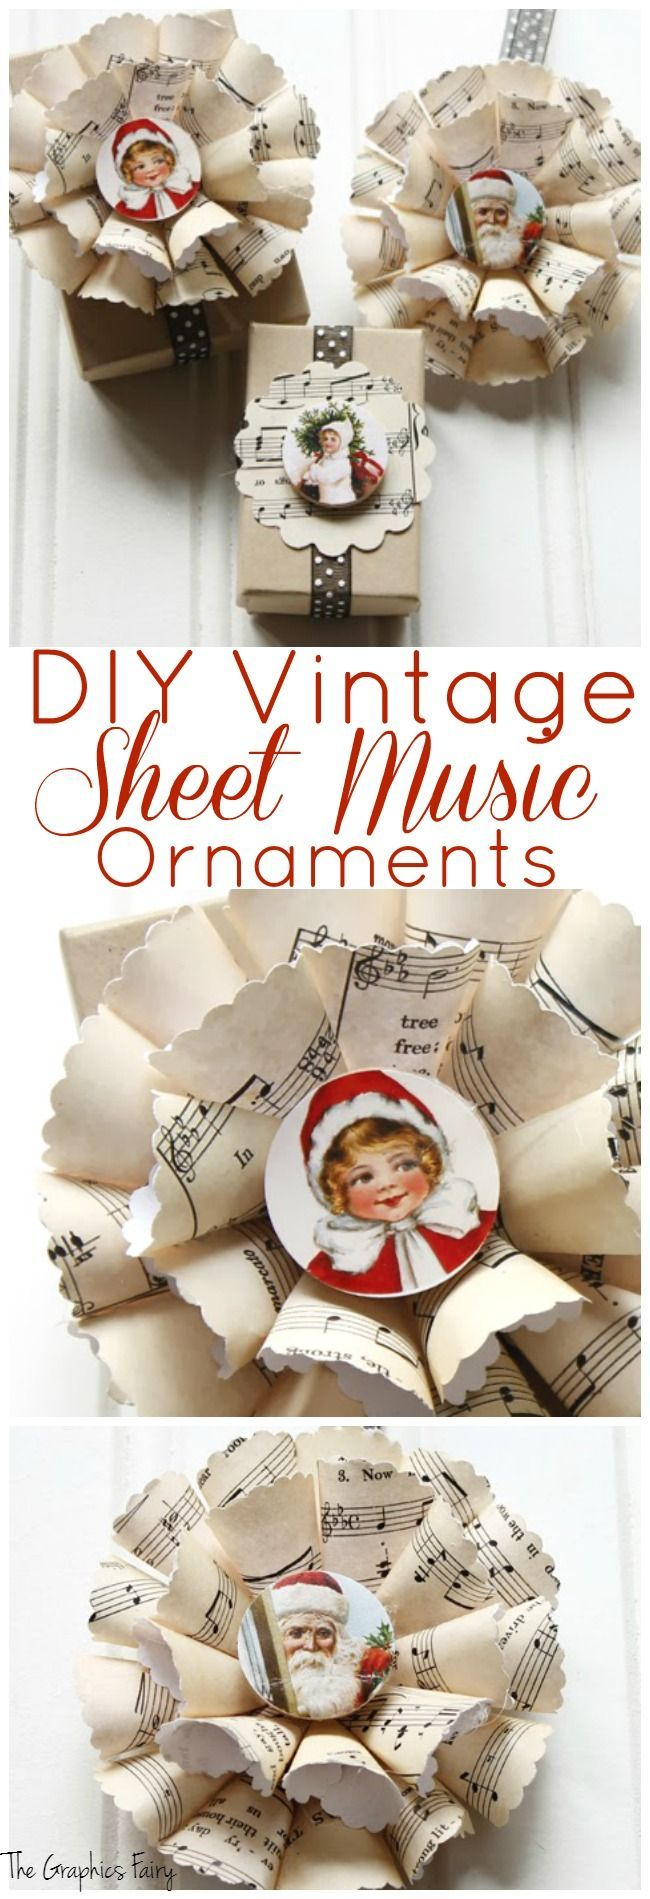 DIY Vintage Sheet Music Ornaments - The Graphics Fairy